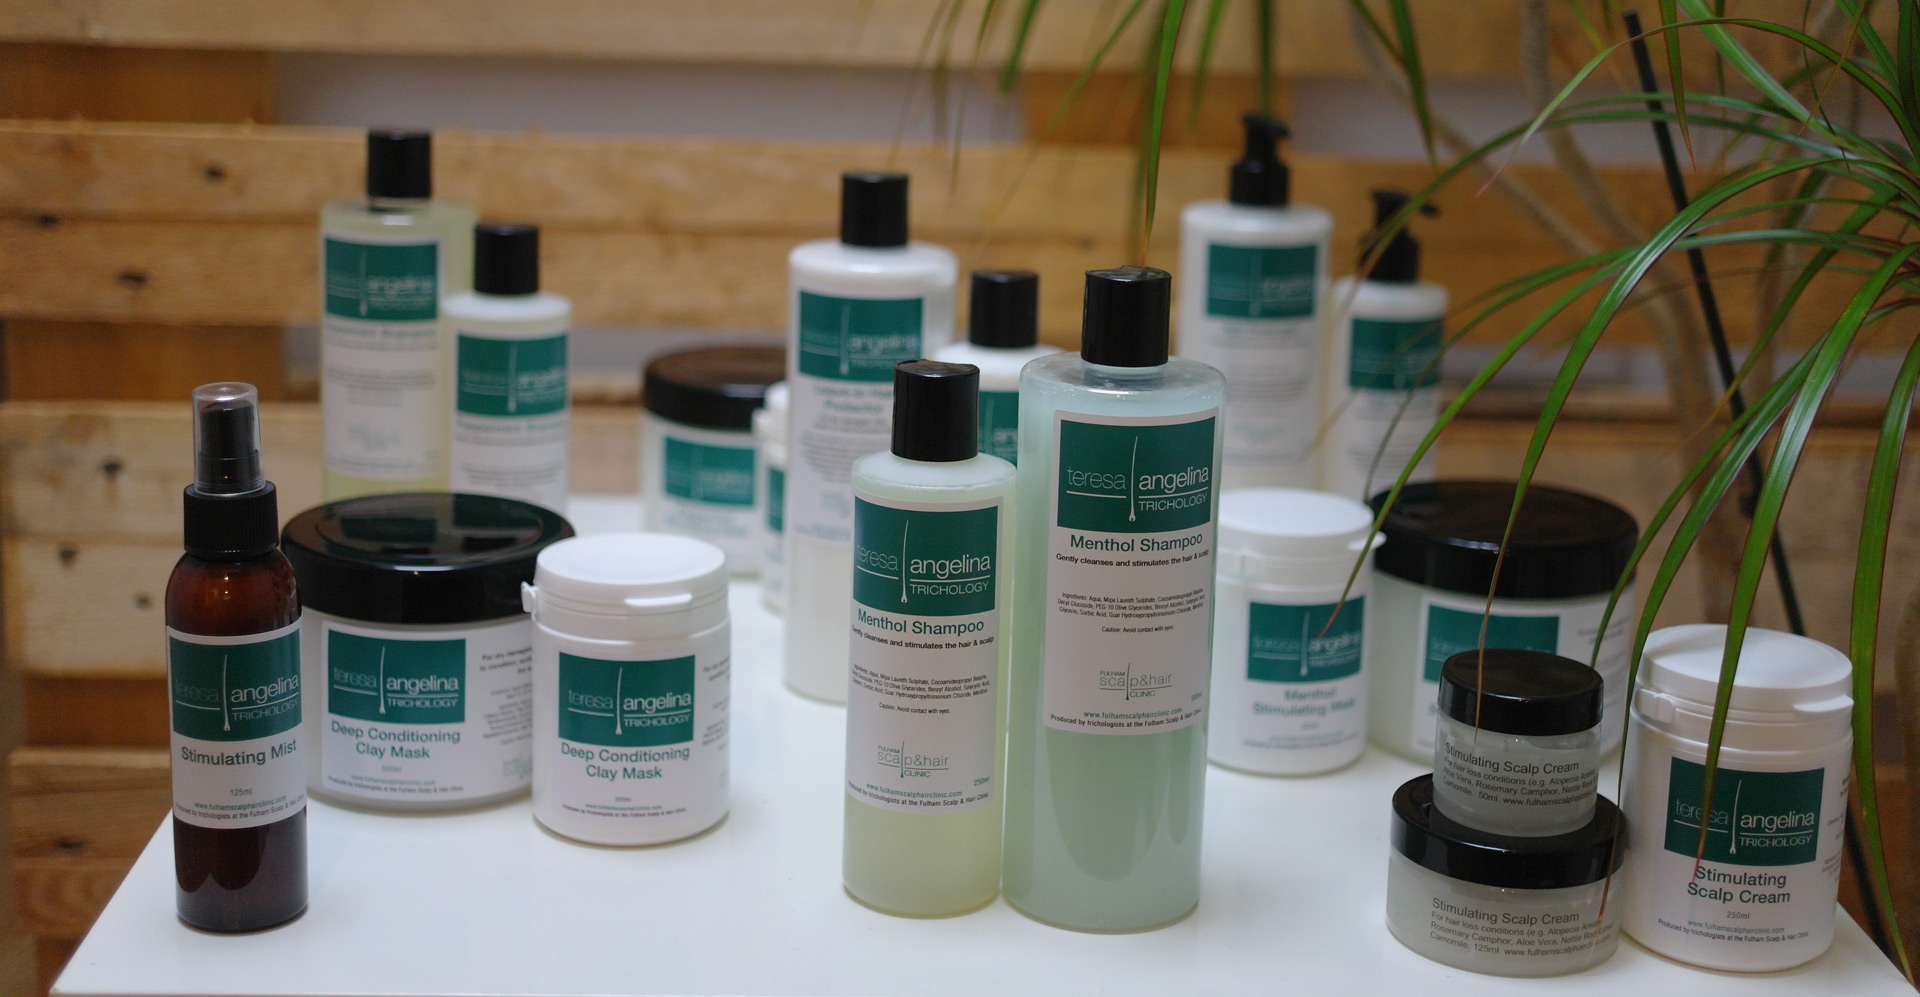 Fulham scalp and hair clinic products